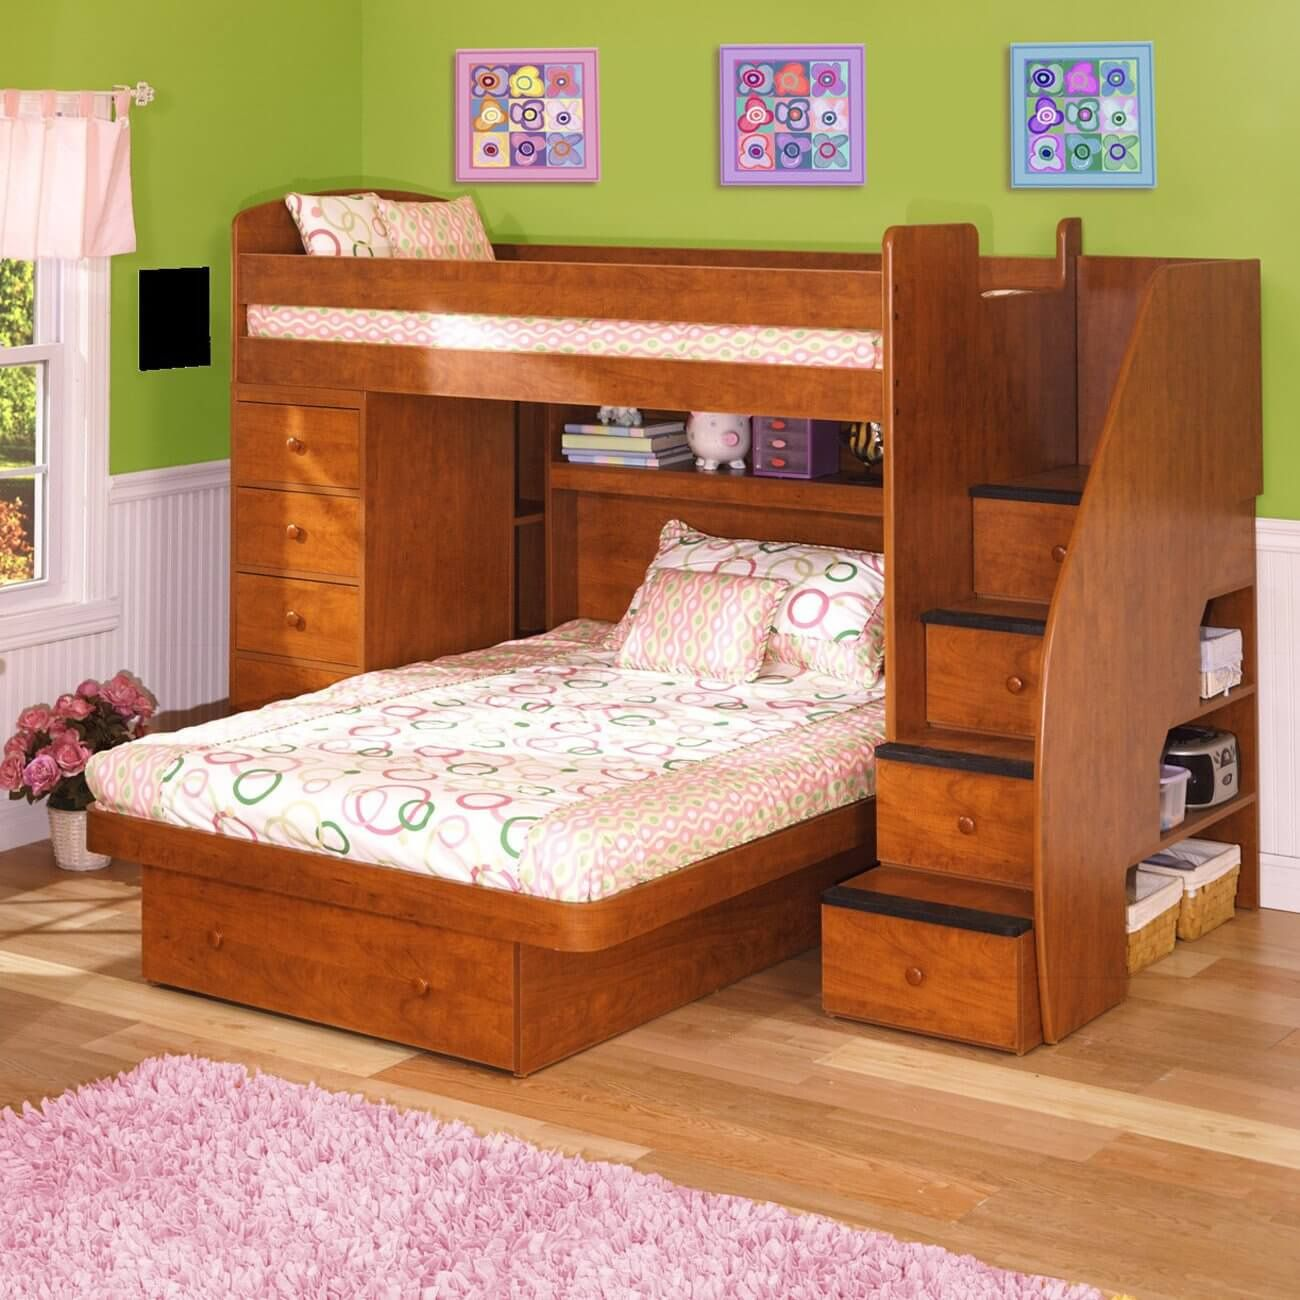 Loft bed plans for full size mattress  Bunk Bed with Full Size Bed  Interior Paint Color Schemes Check